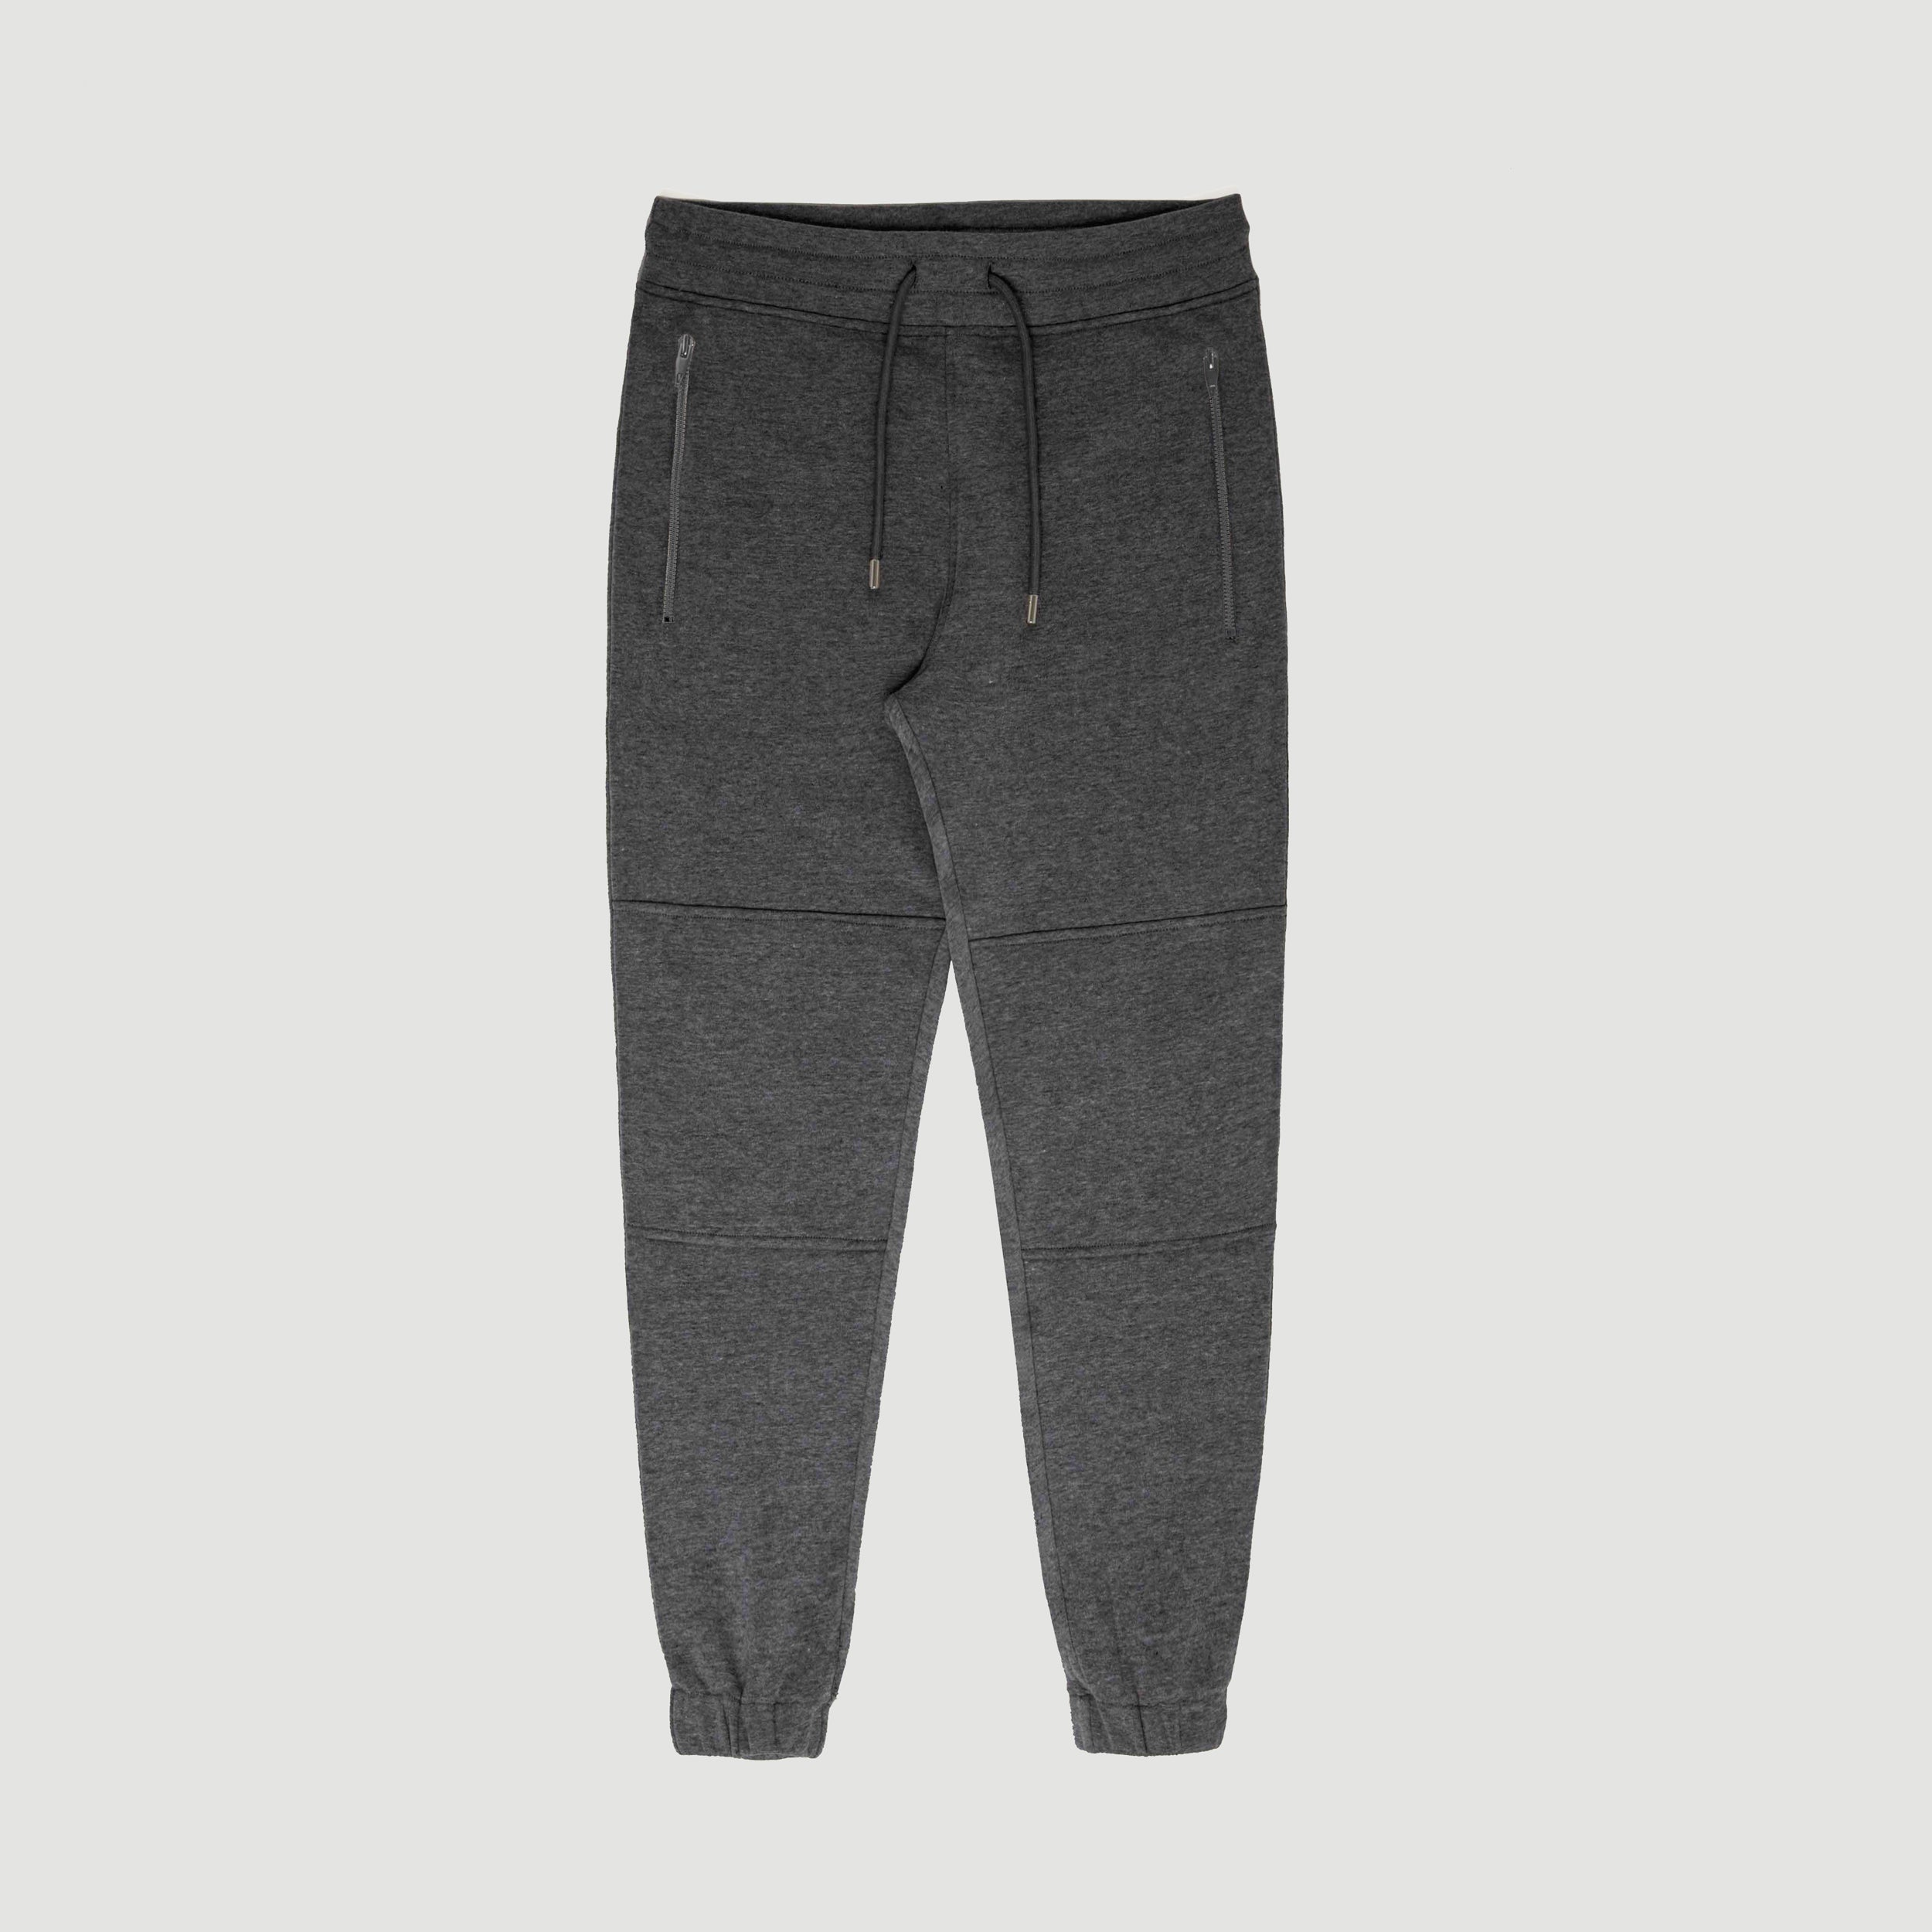 ASPEN PANT - Dark Grey Heather